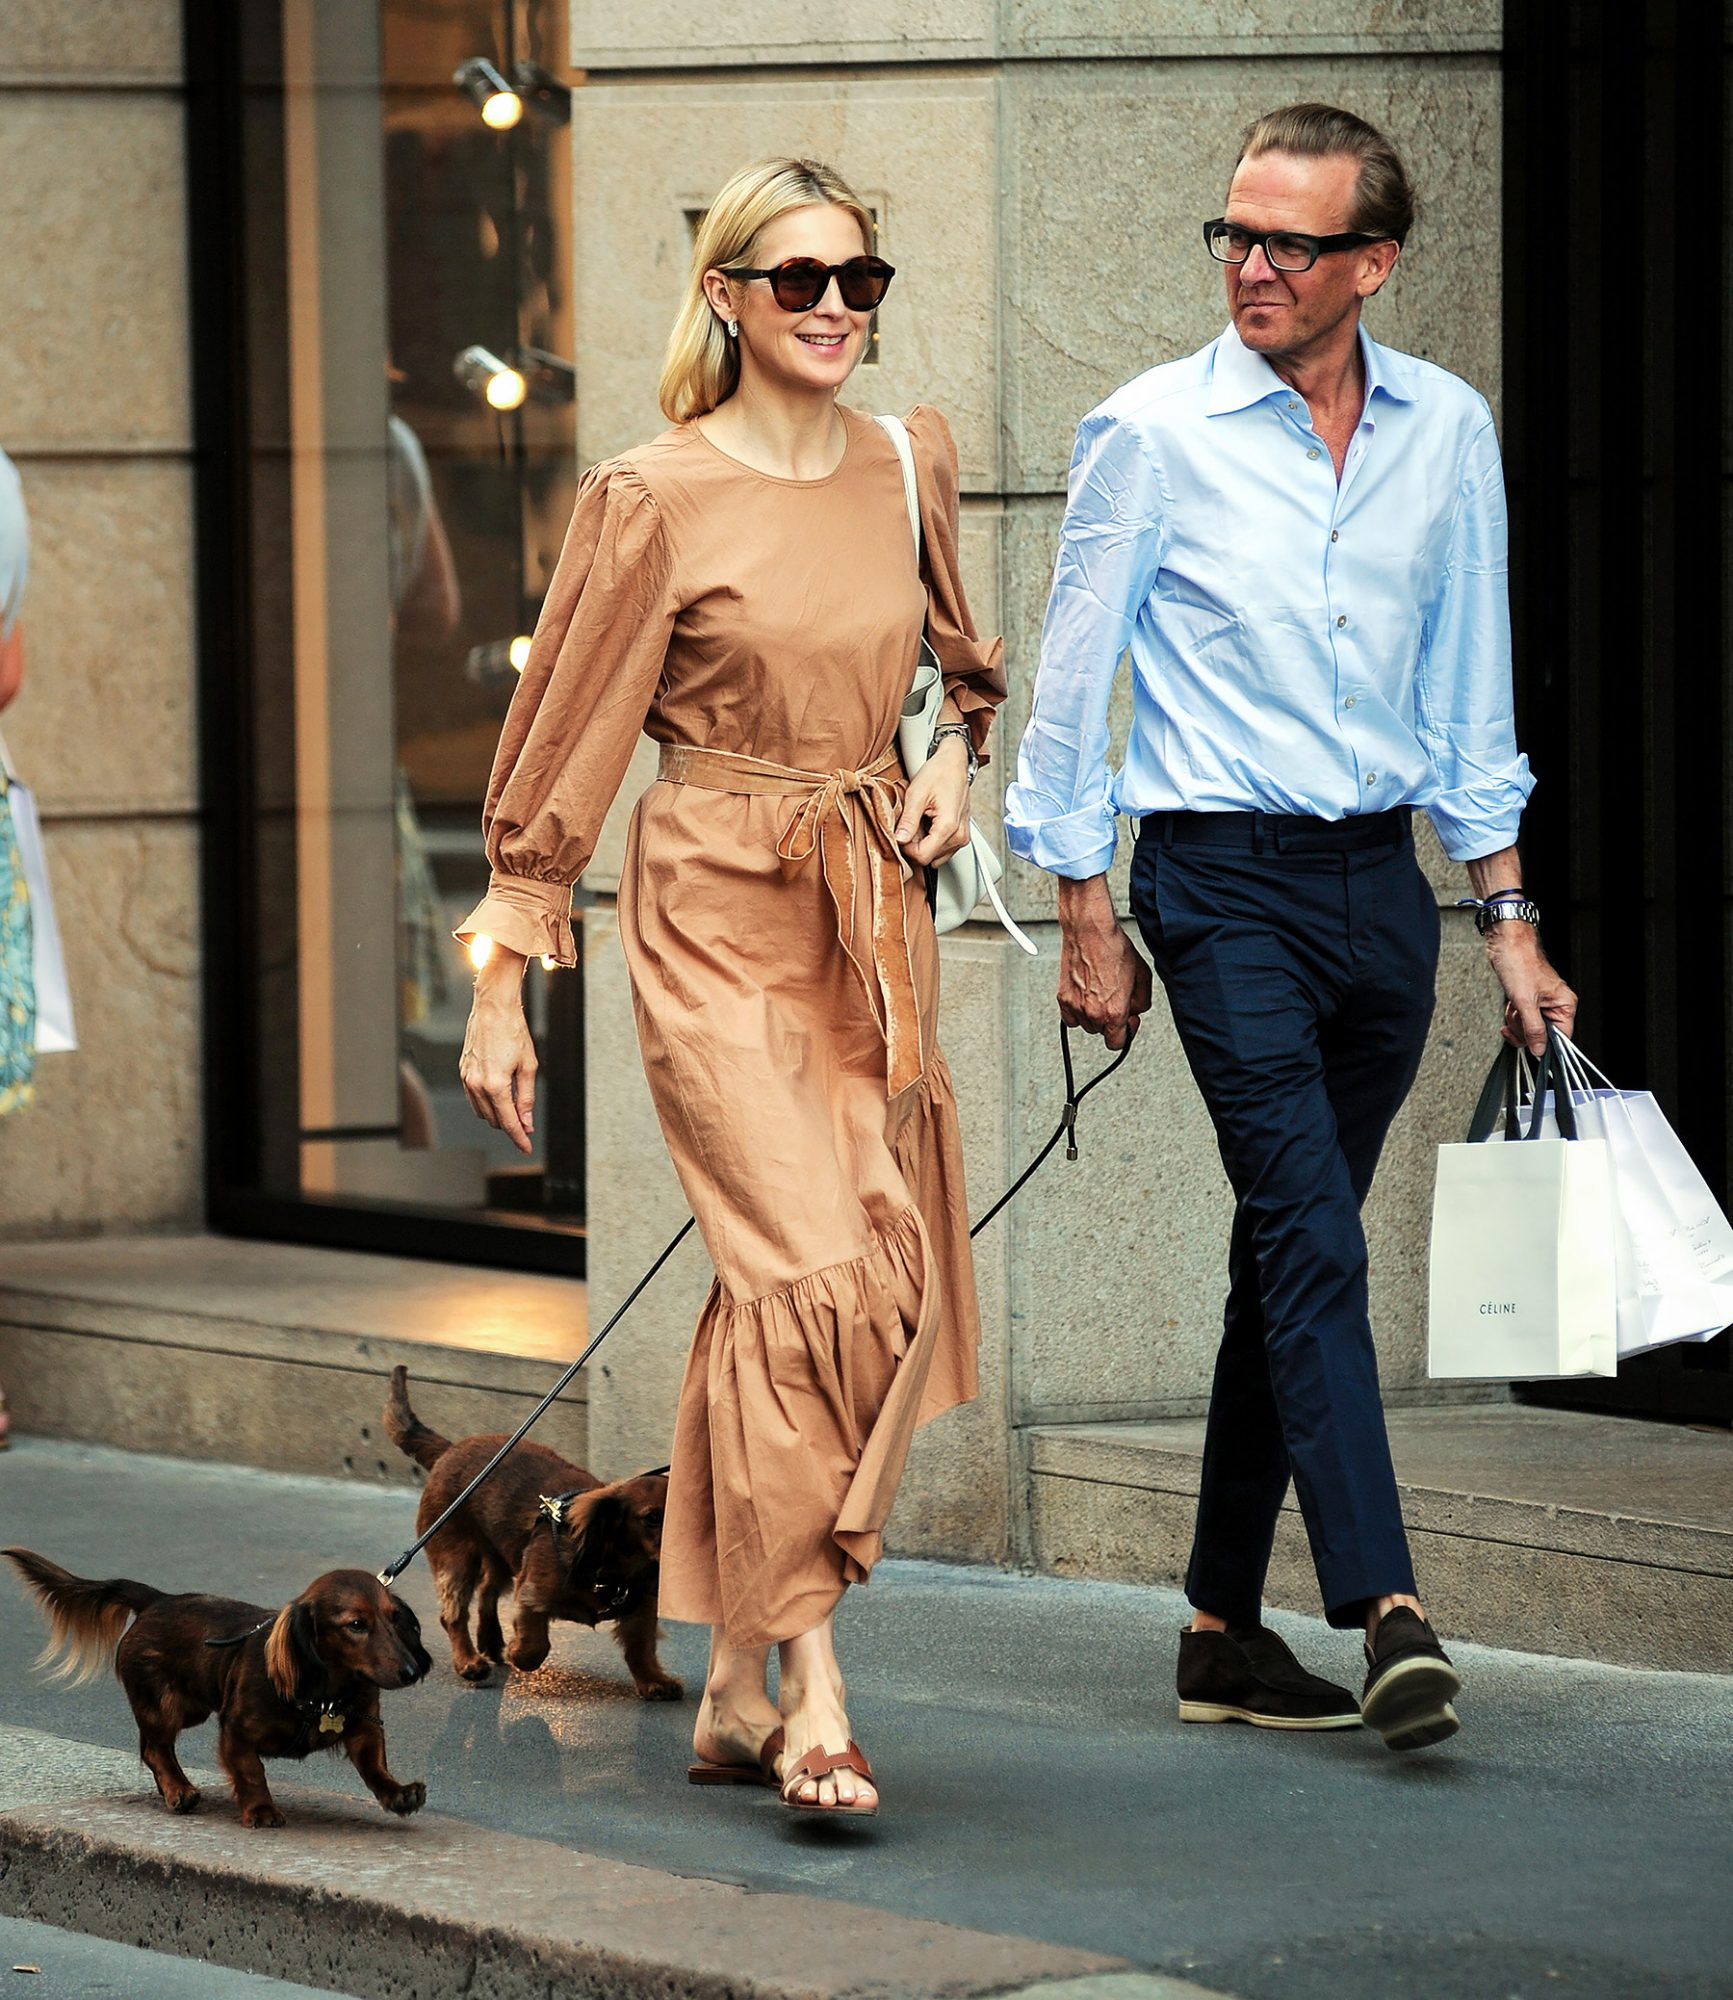 Actress Kelly Rutherford Seen Out In Milan